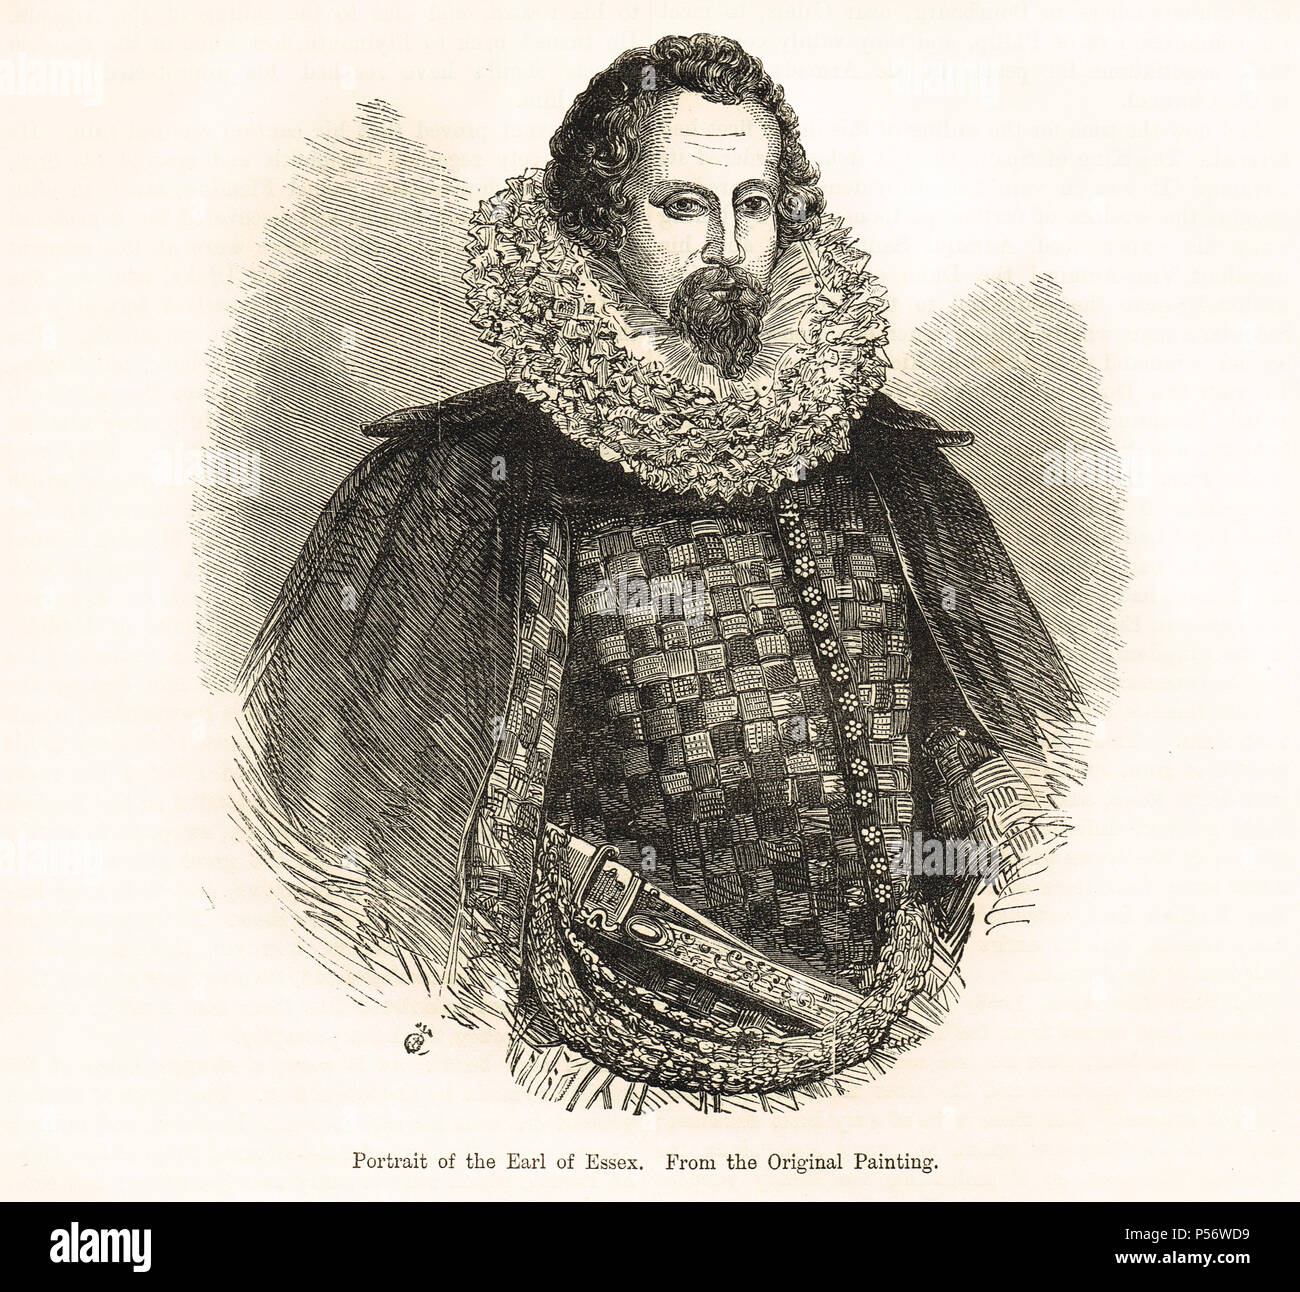 Robert Devereux, 2nd Earl of Essex, English nobleman and favourite of Elizabeth I - Stock Image